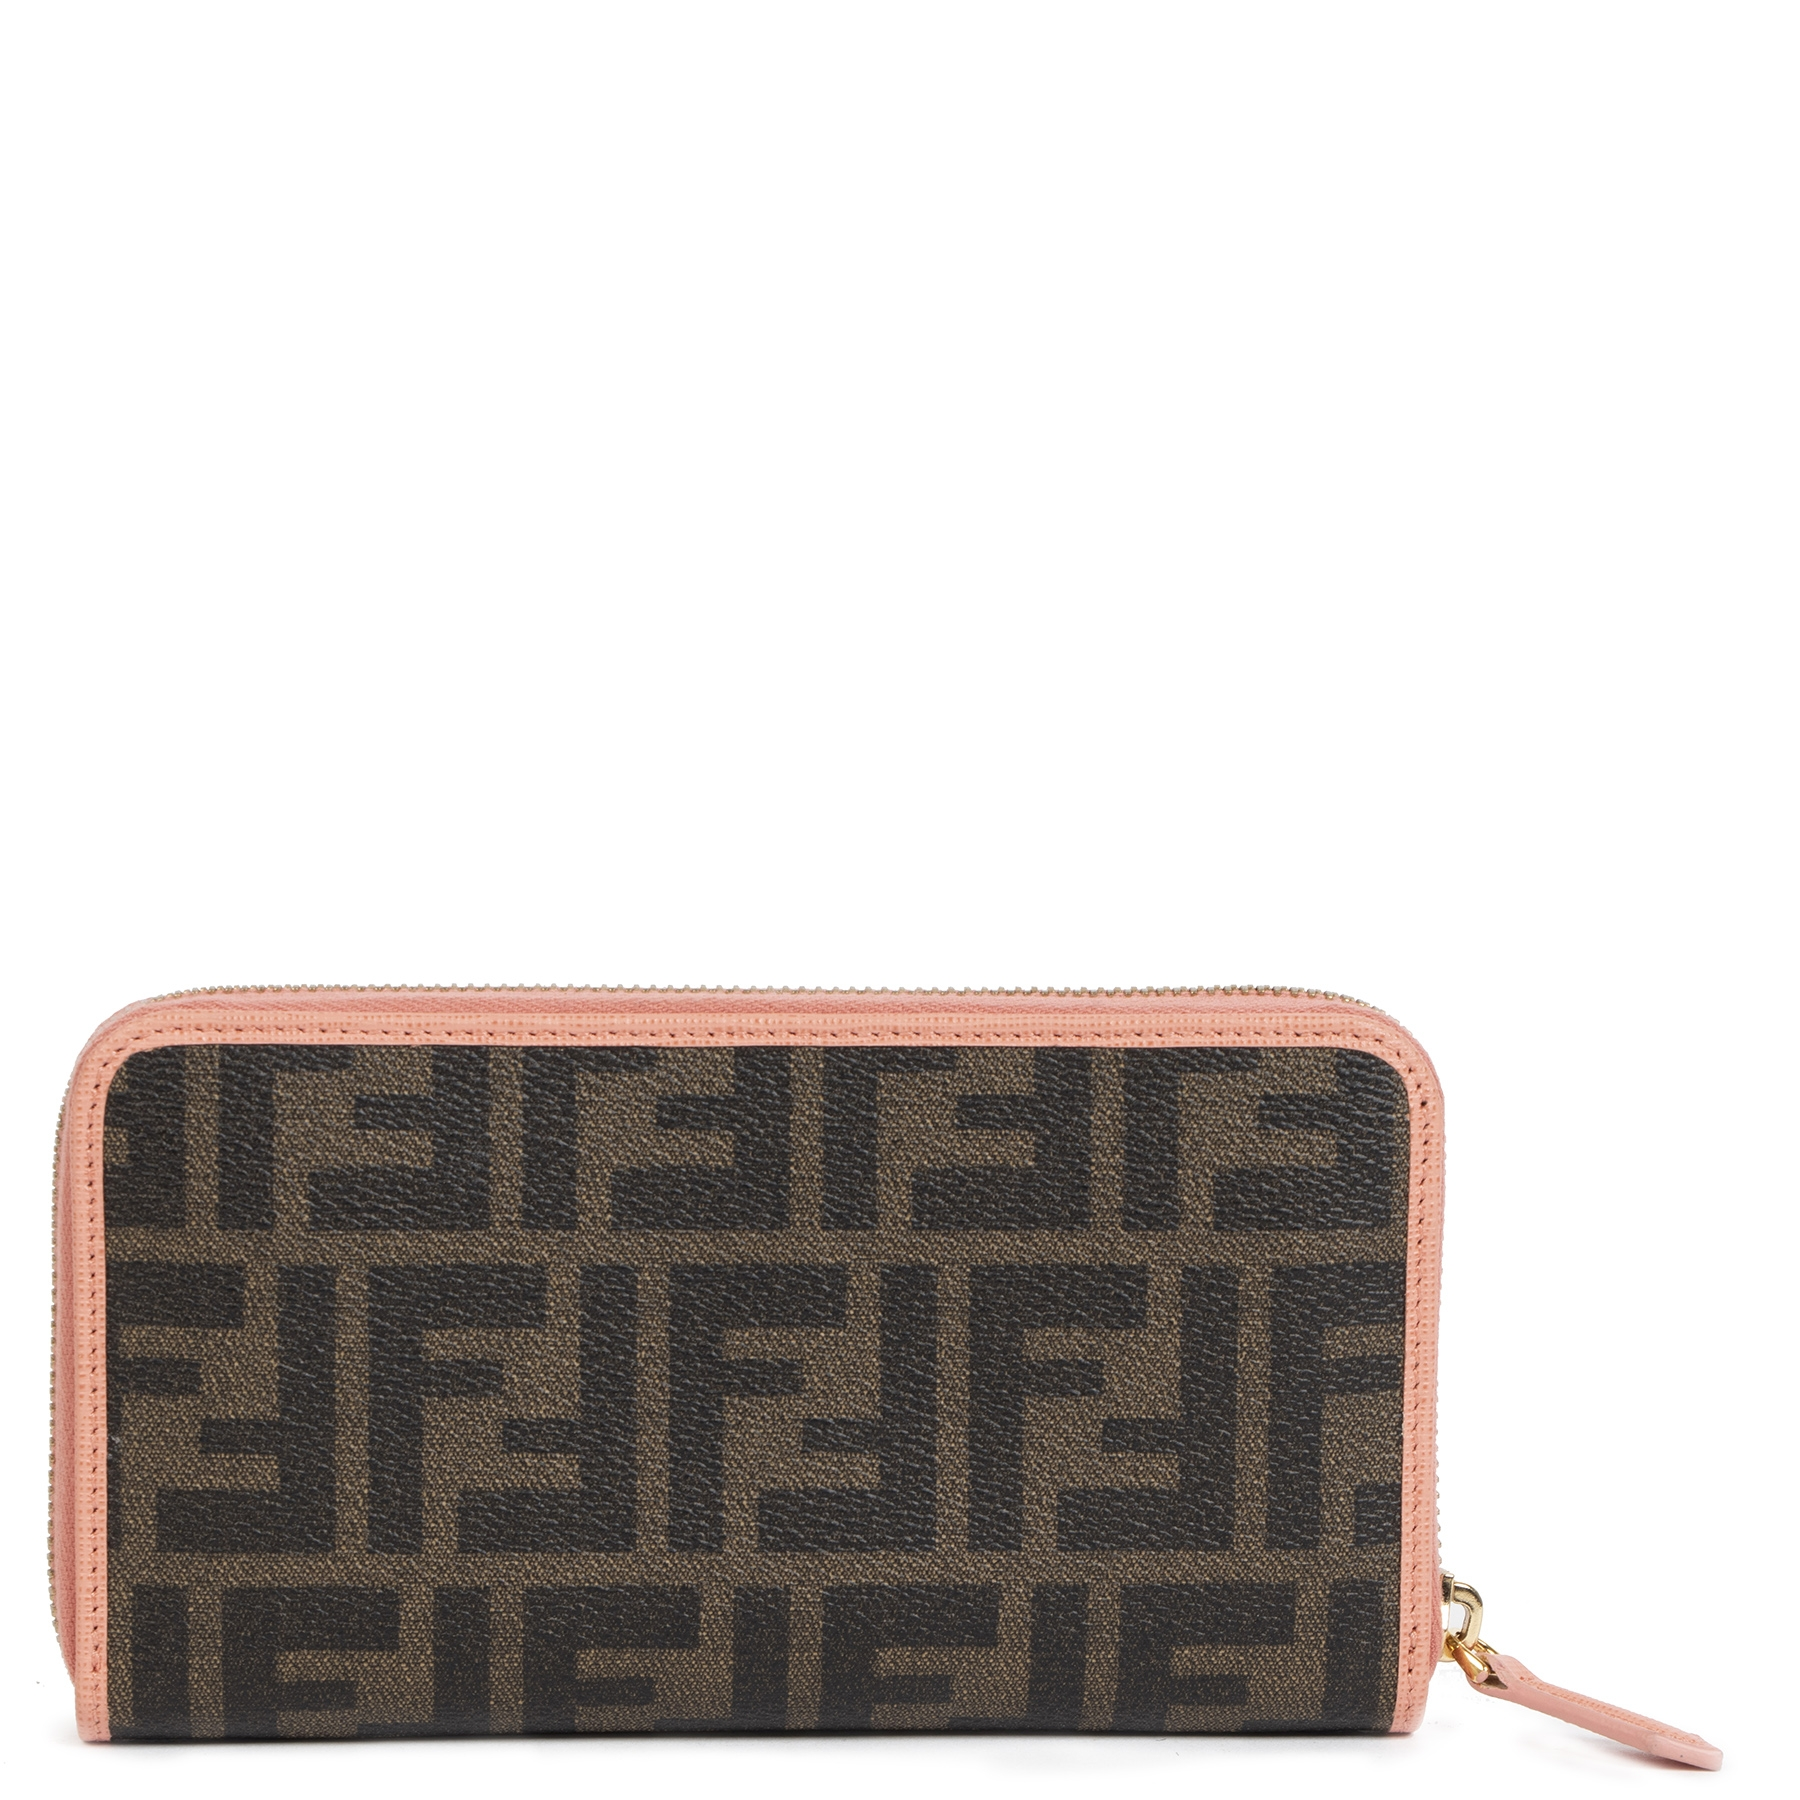 Fendi Brown/Pink Zippy Zucca Wallet for the best price at Labellov secondhand luxury in Antwerp